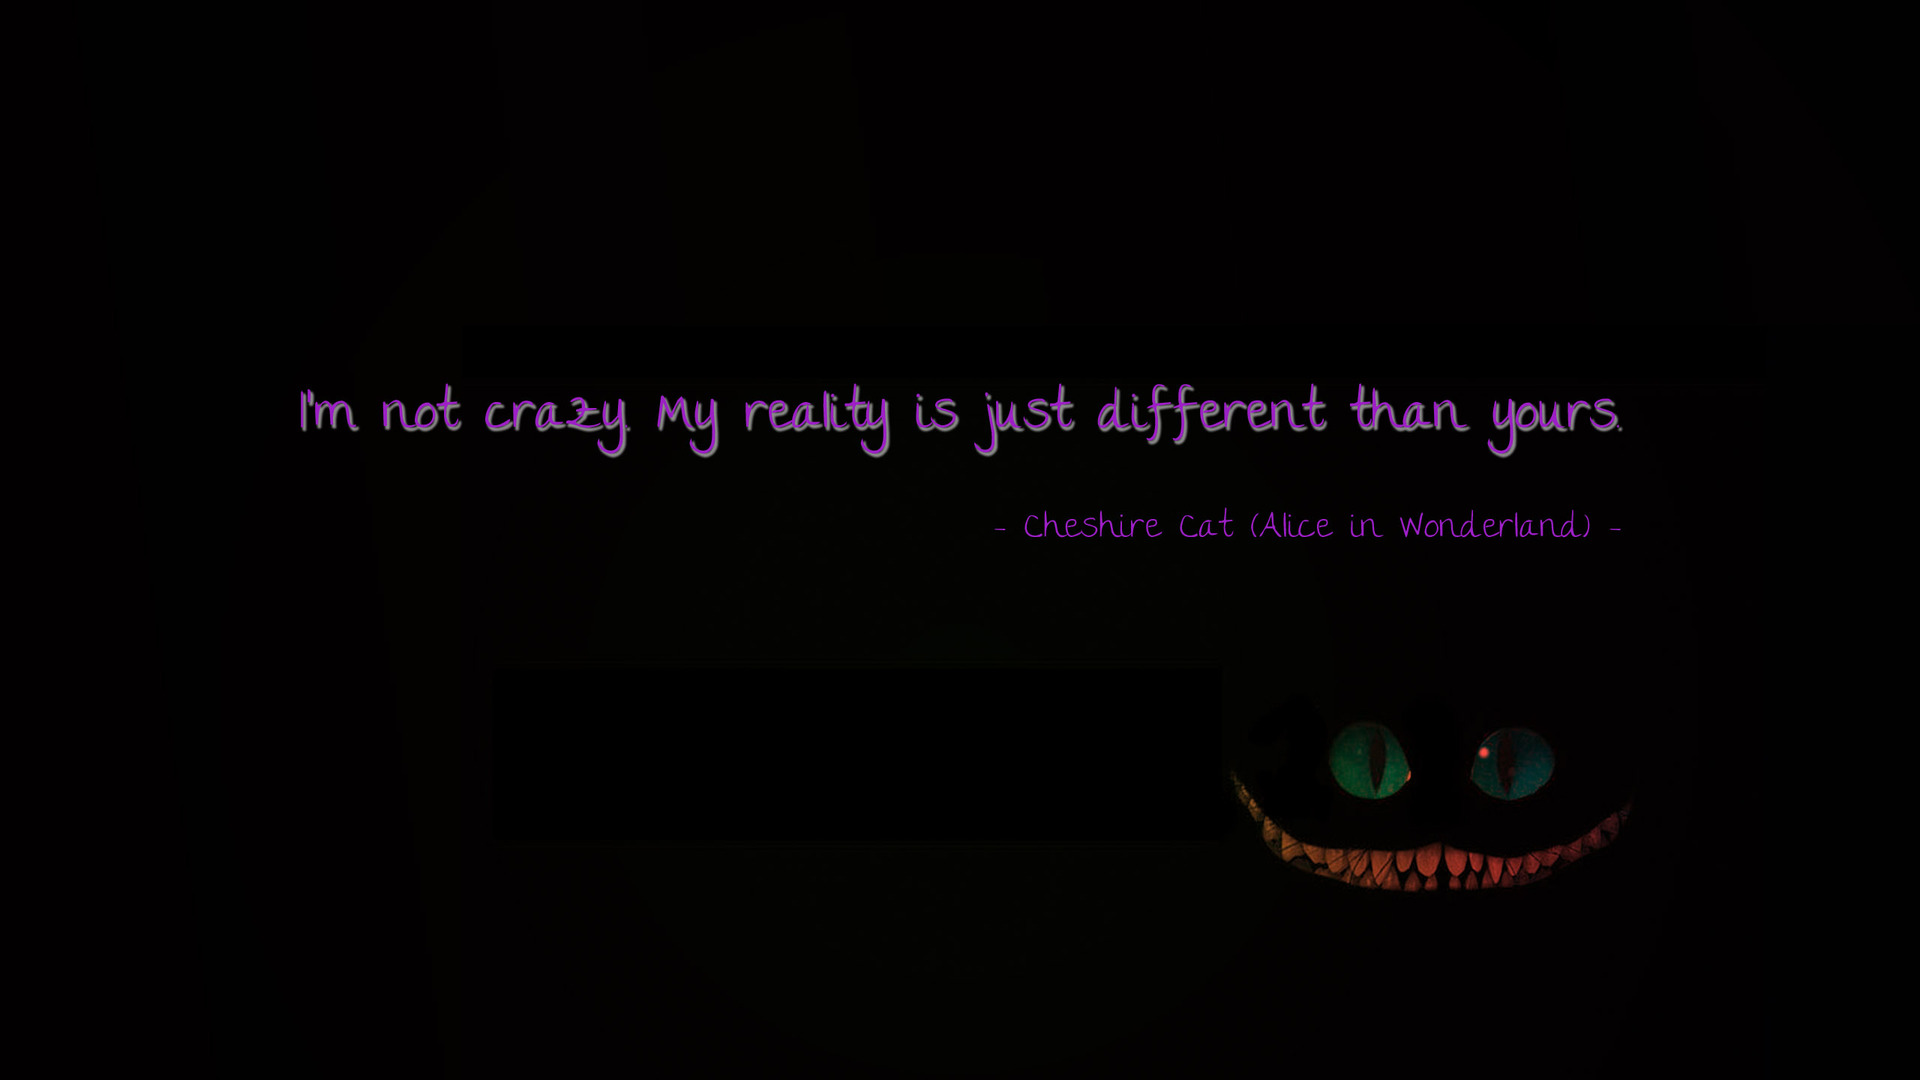 crazy s wallpaper 1920x1080 40056